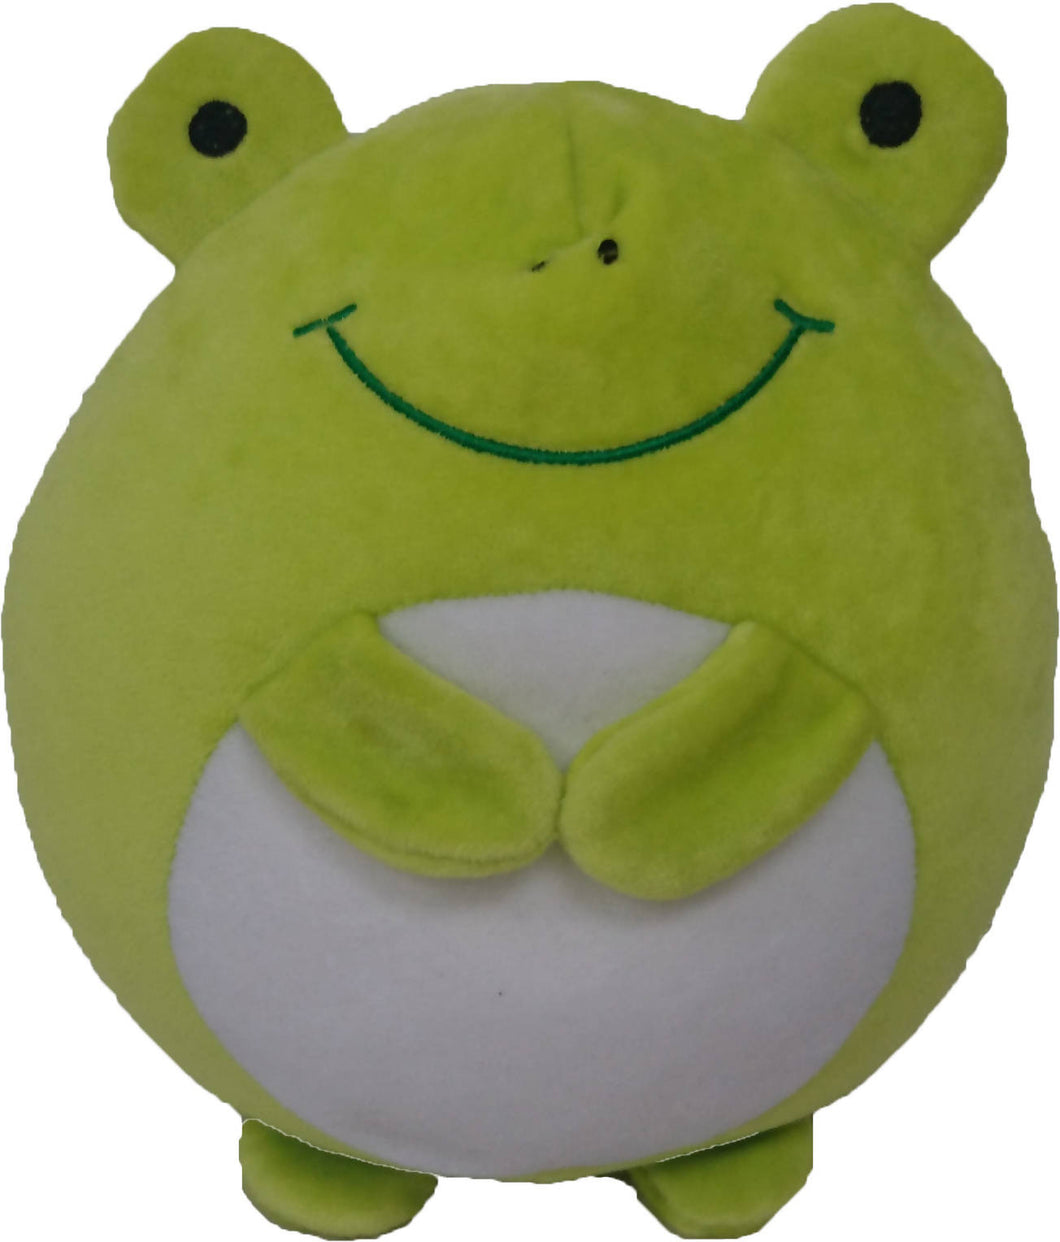 HANLOW - Animal Supersoft cushion - Green Frog